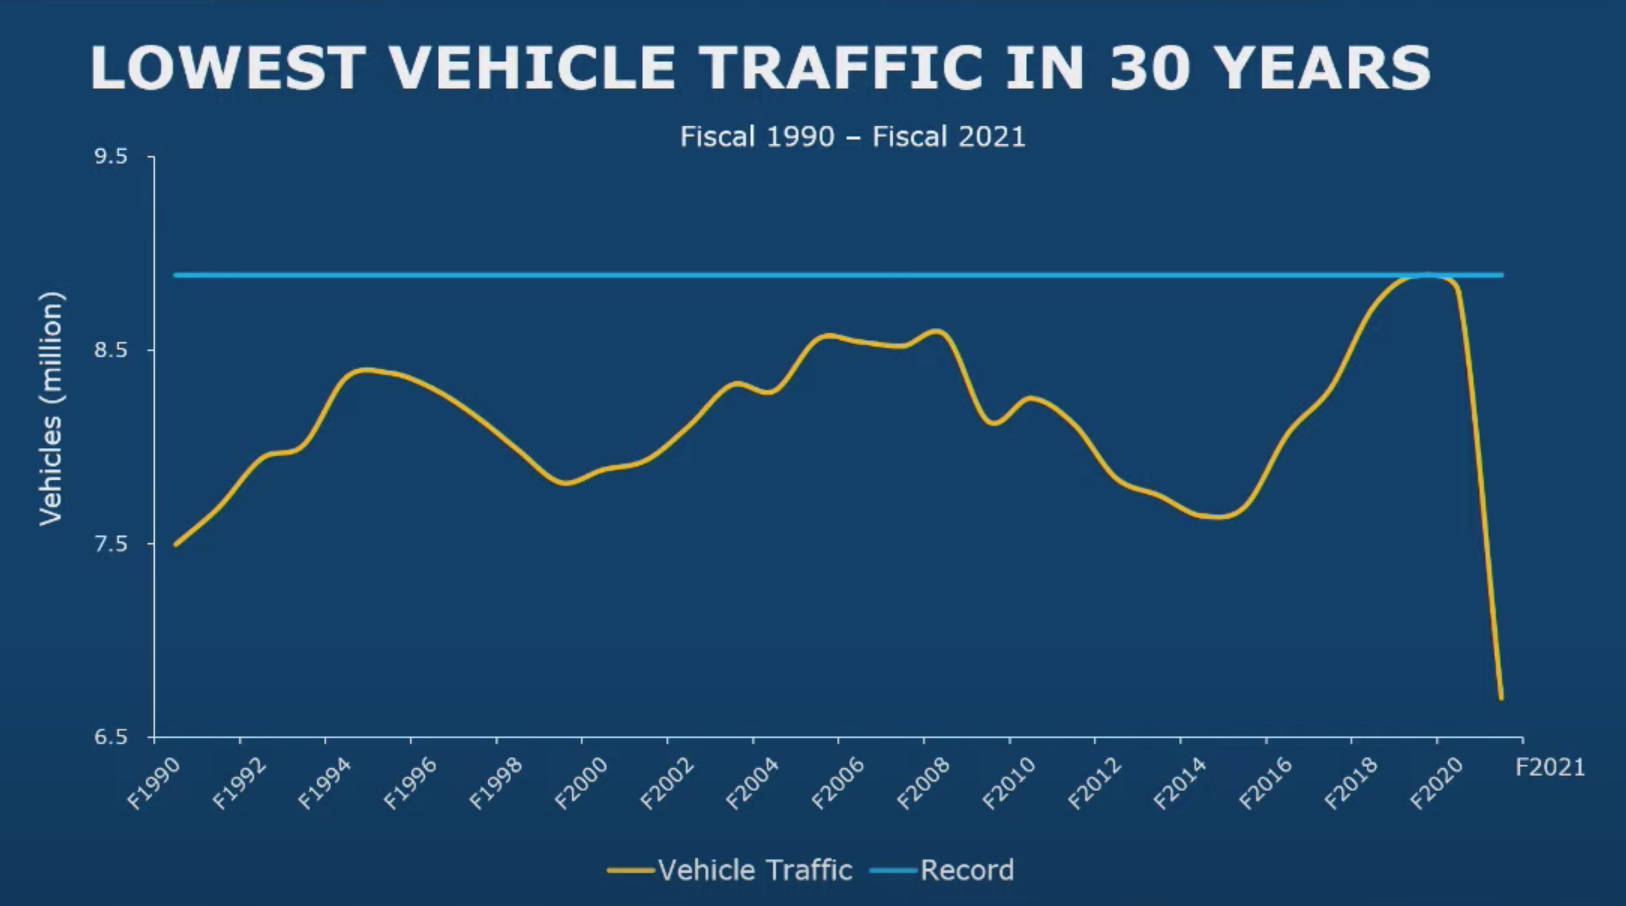 Fiscal year 2021 recorded the lowest B.C. Ferry vehicle traffic in 30 years. (BC Ferries Financial Report)